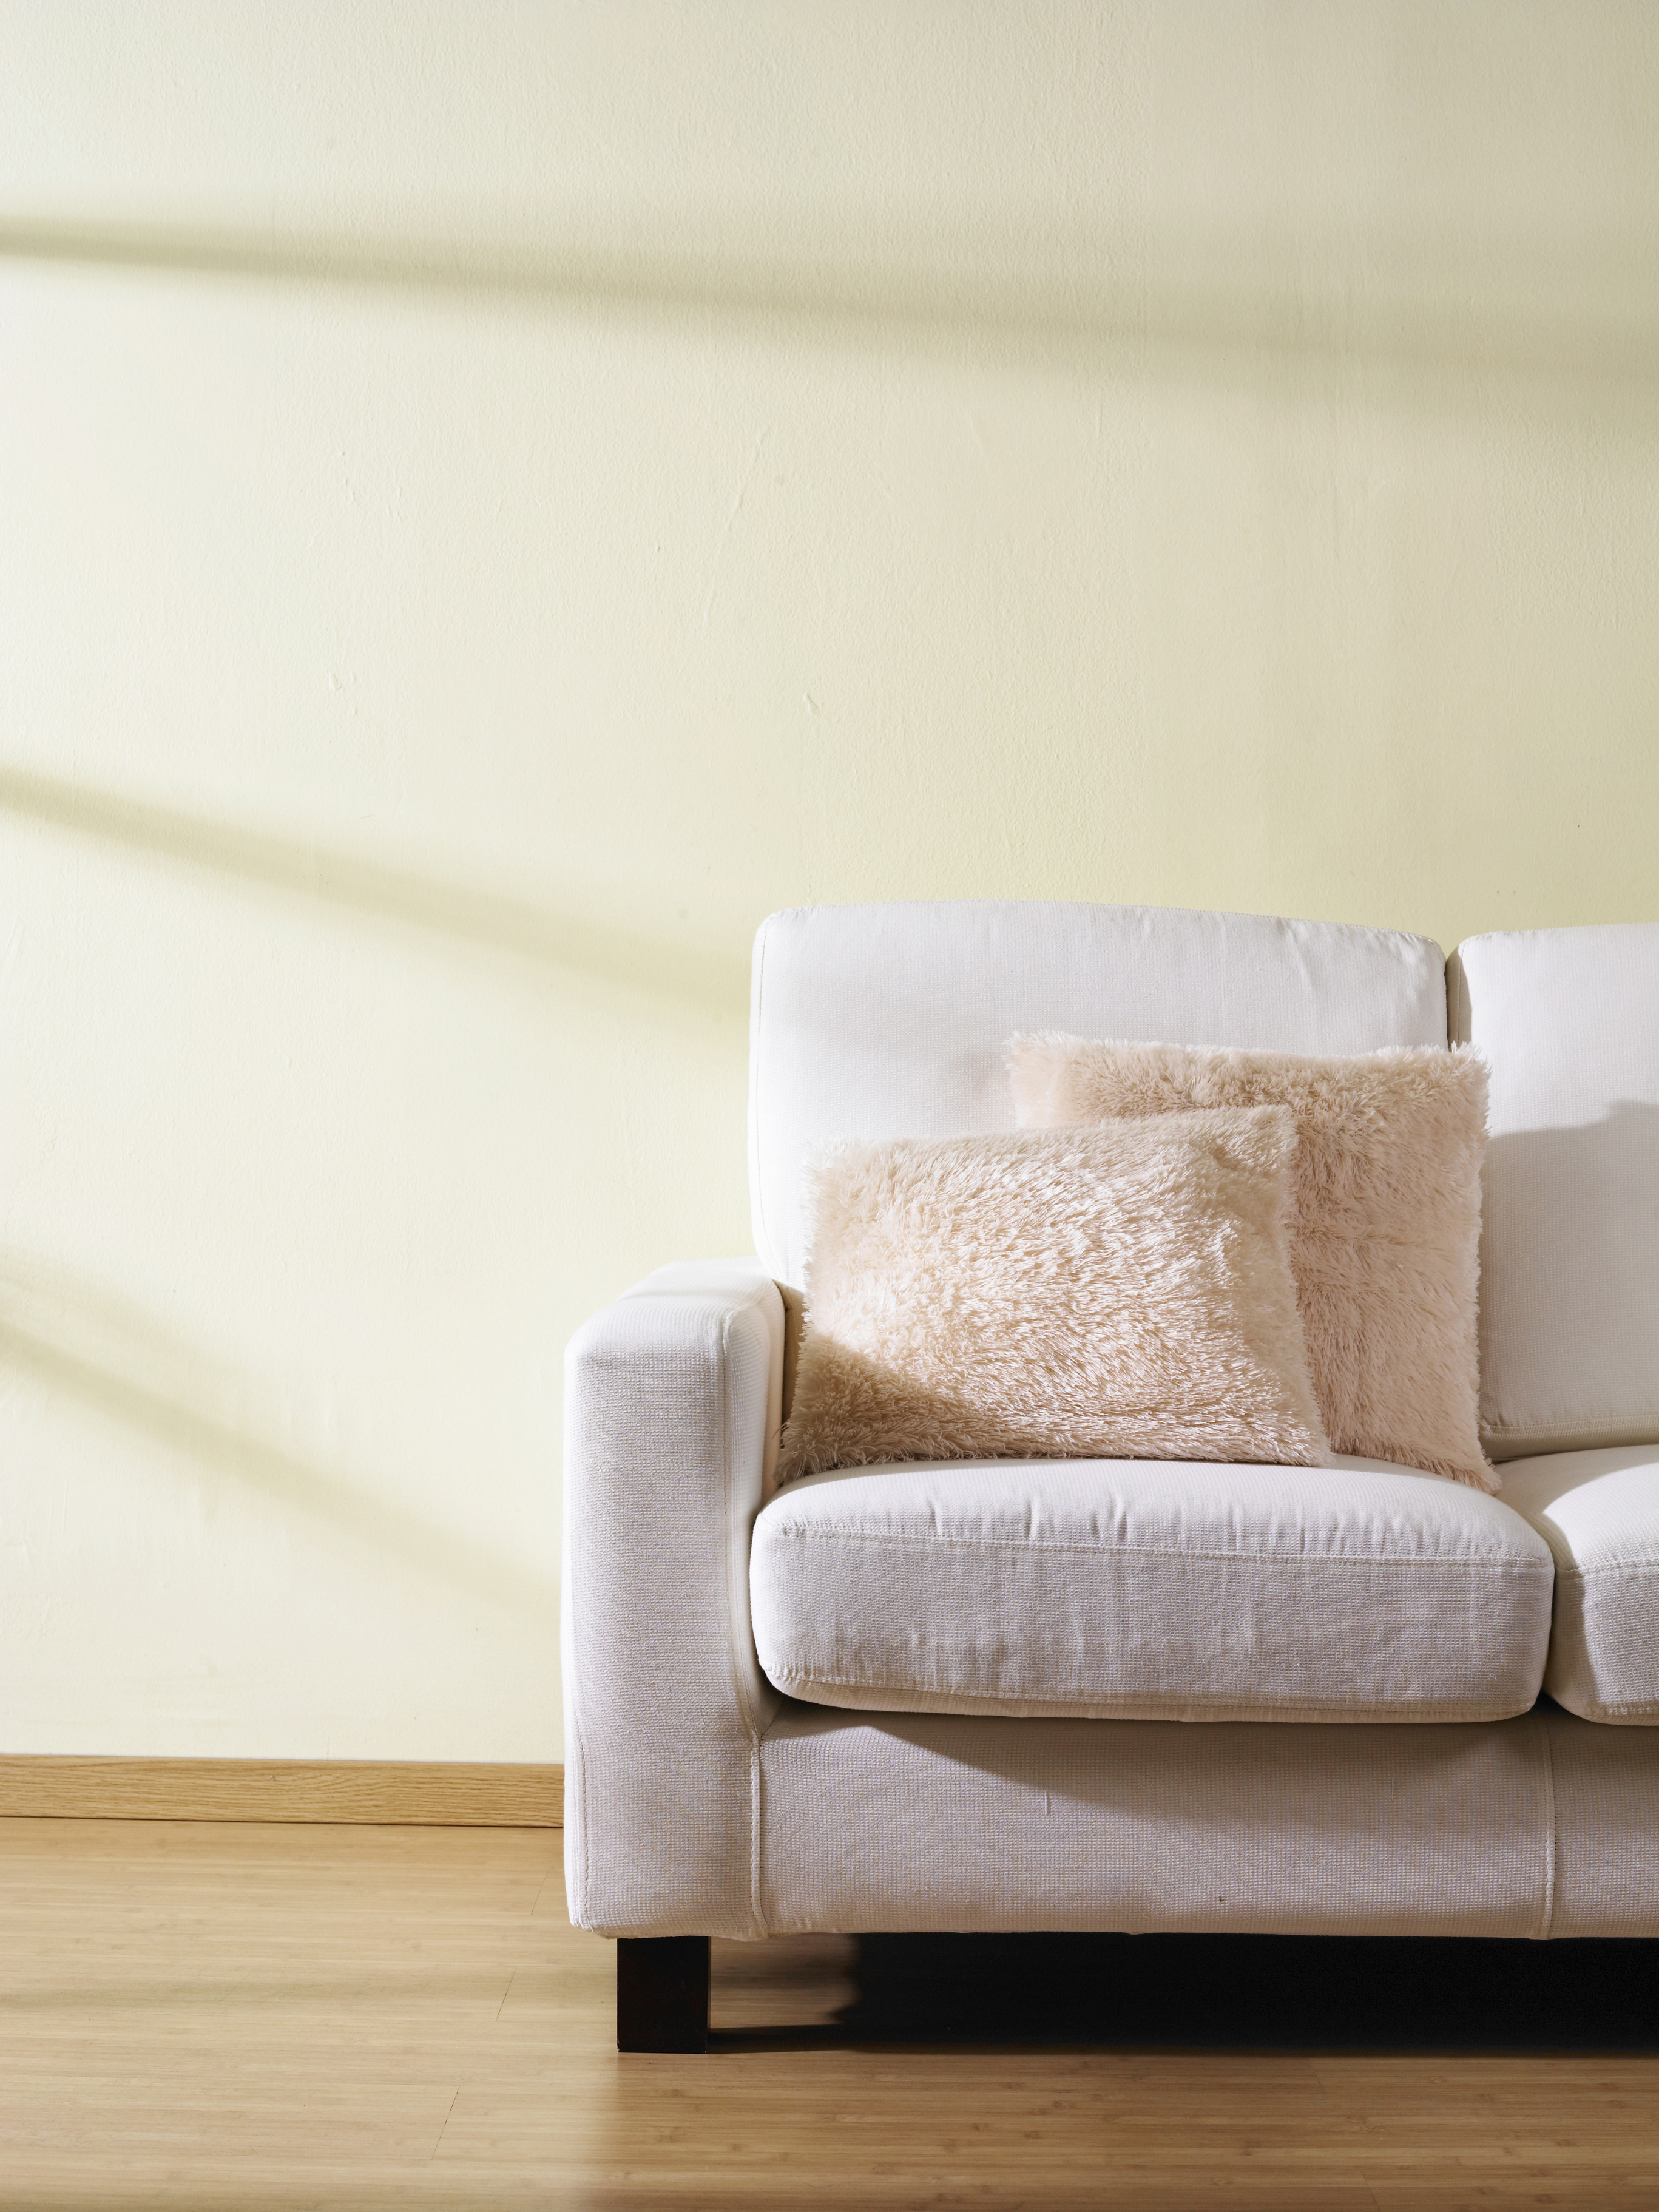 sofa with light streaming in.jpg